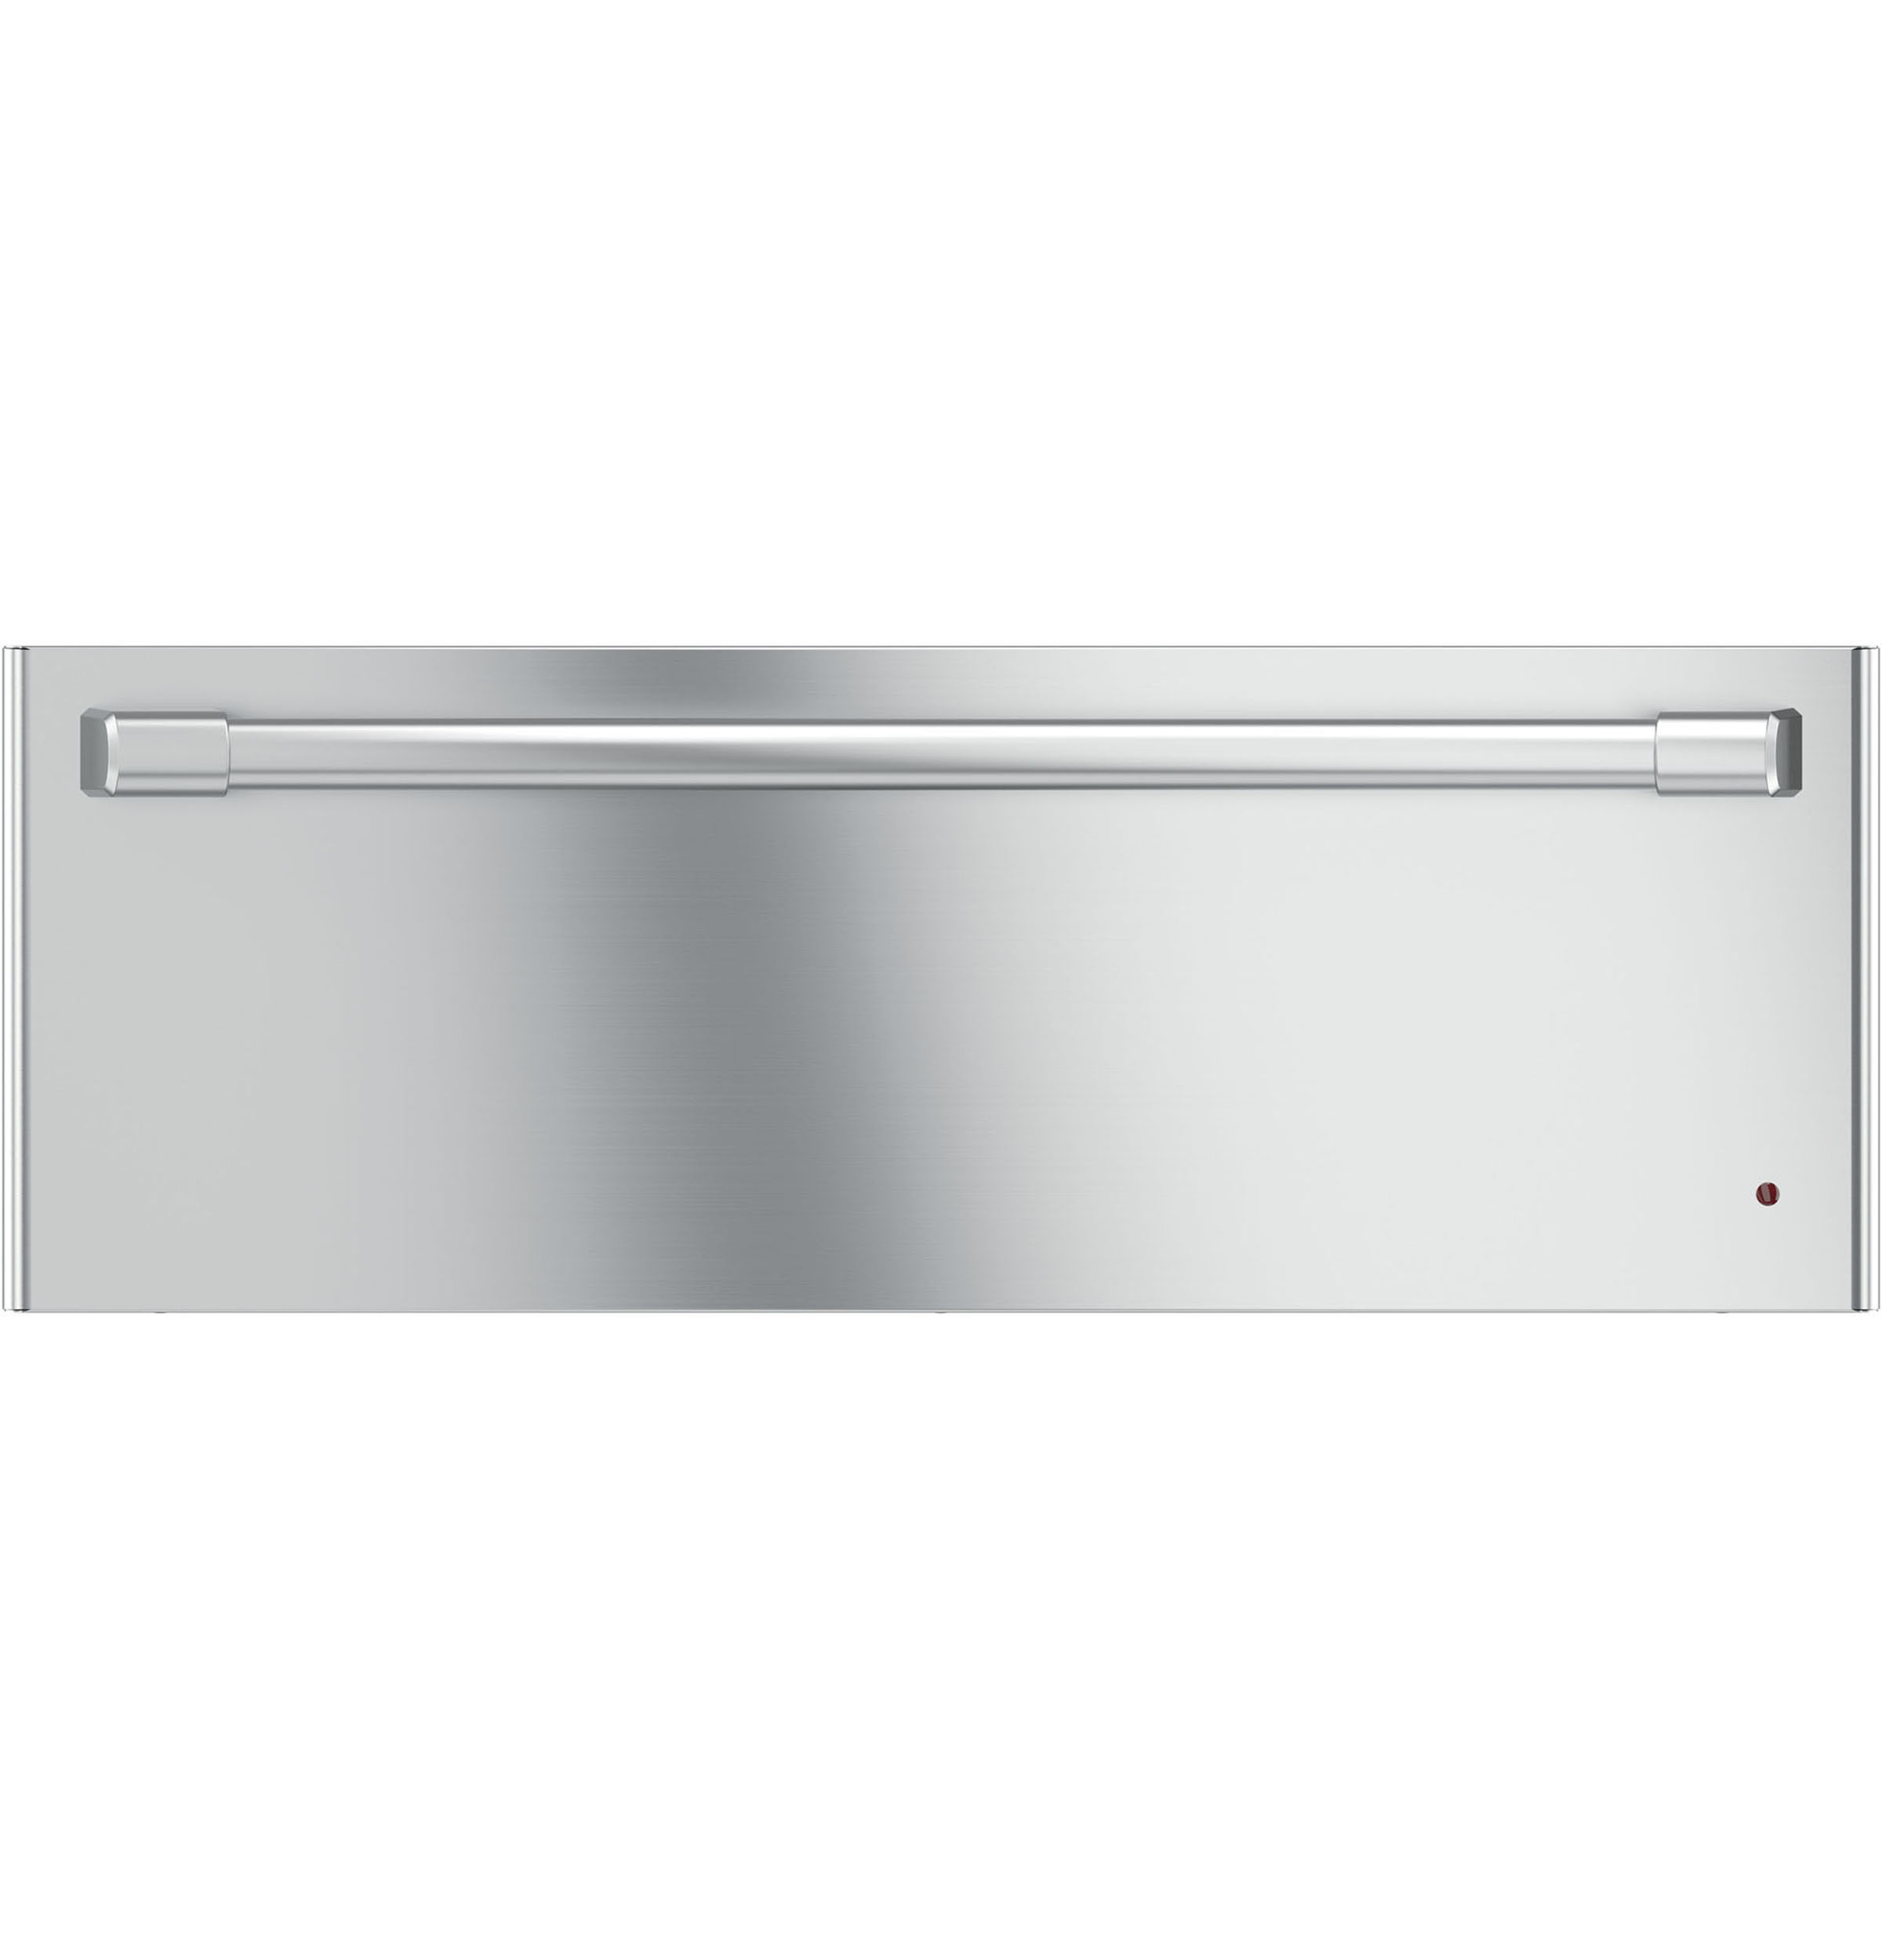 "GE Cafe GE Café™ Series 30"" Warming Drawer"